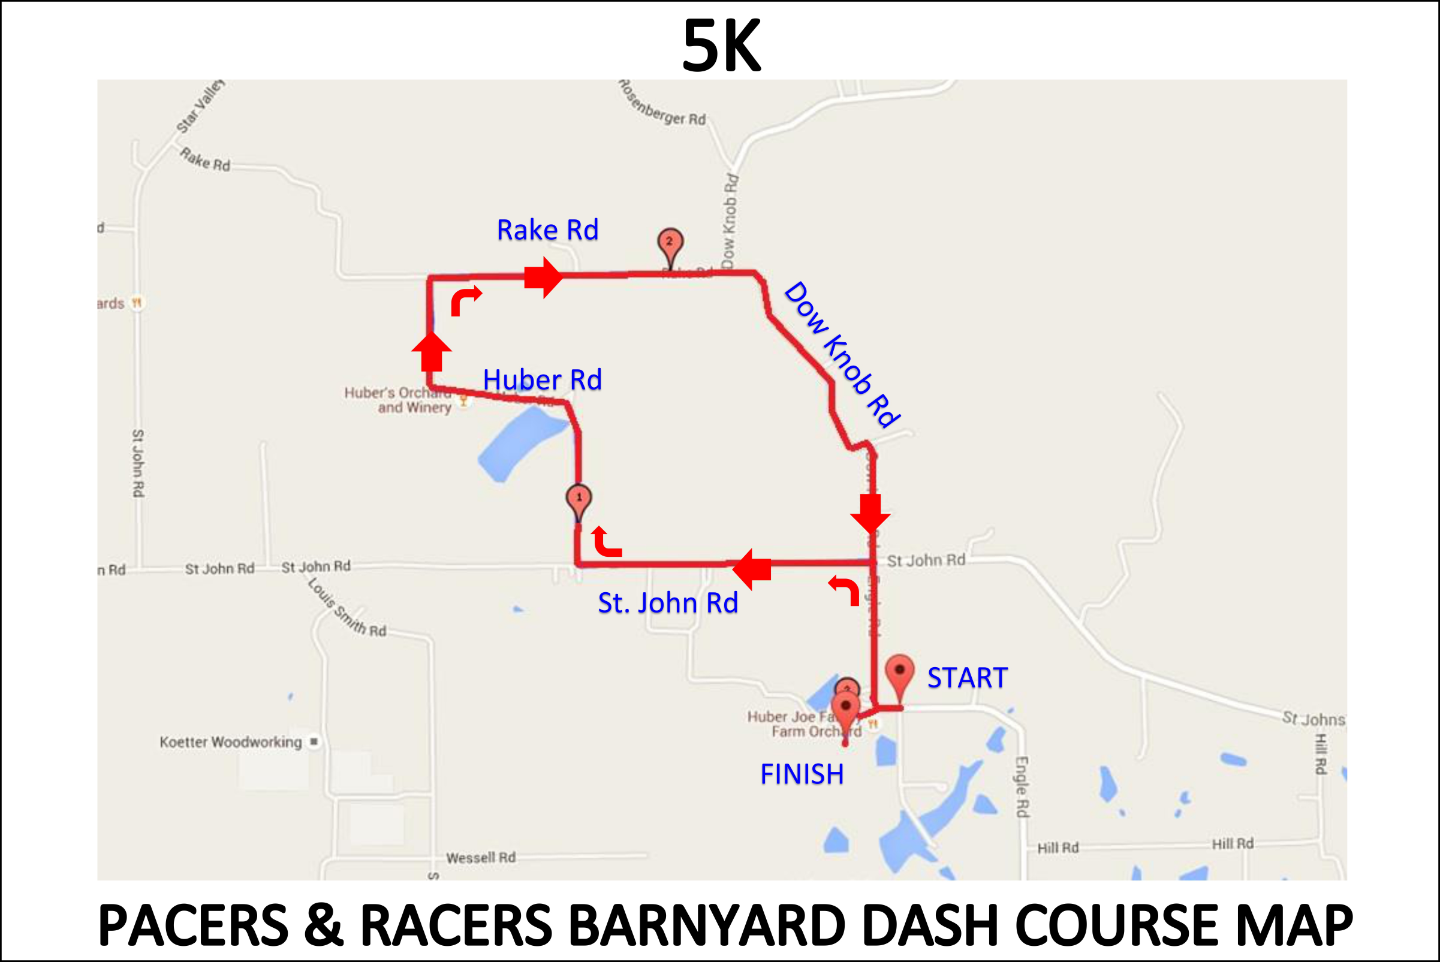 5K Barnyard Dash Course Map